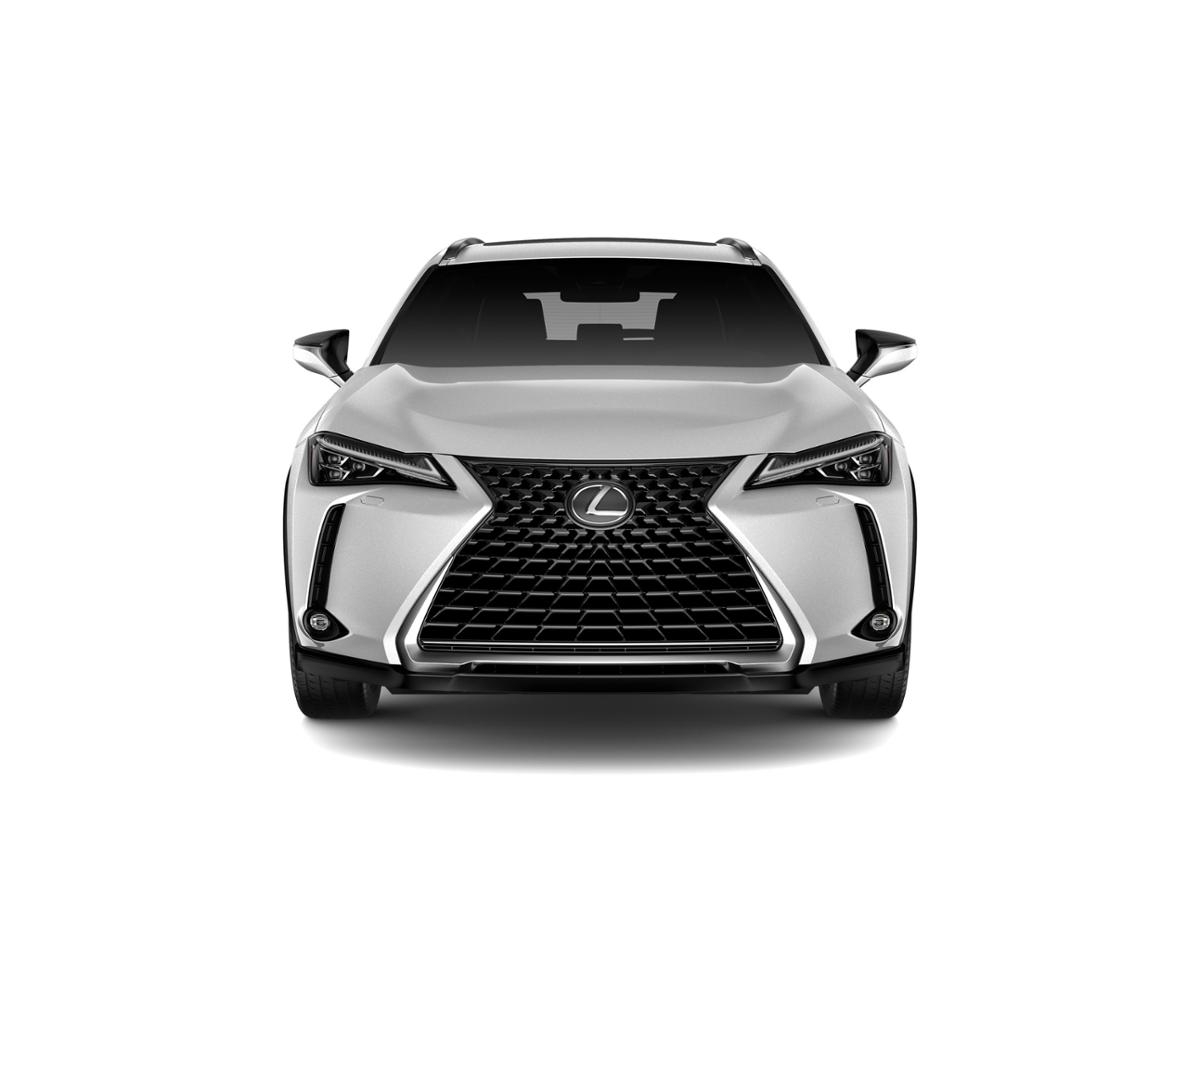 2019 Lexus UX 200 Vehicle Photo in Mission Viejo, CA 92692